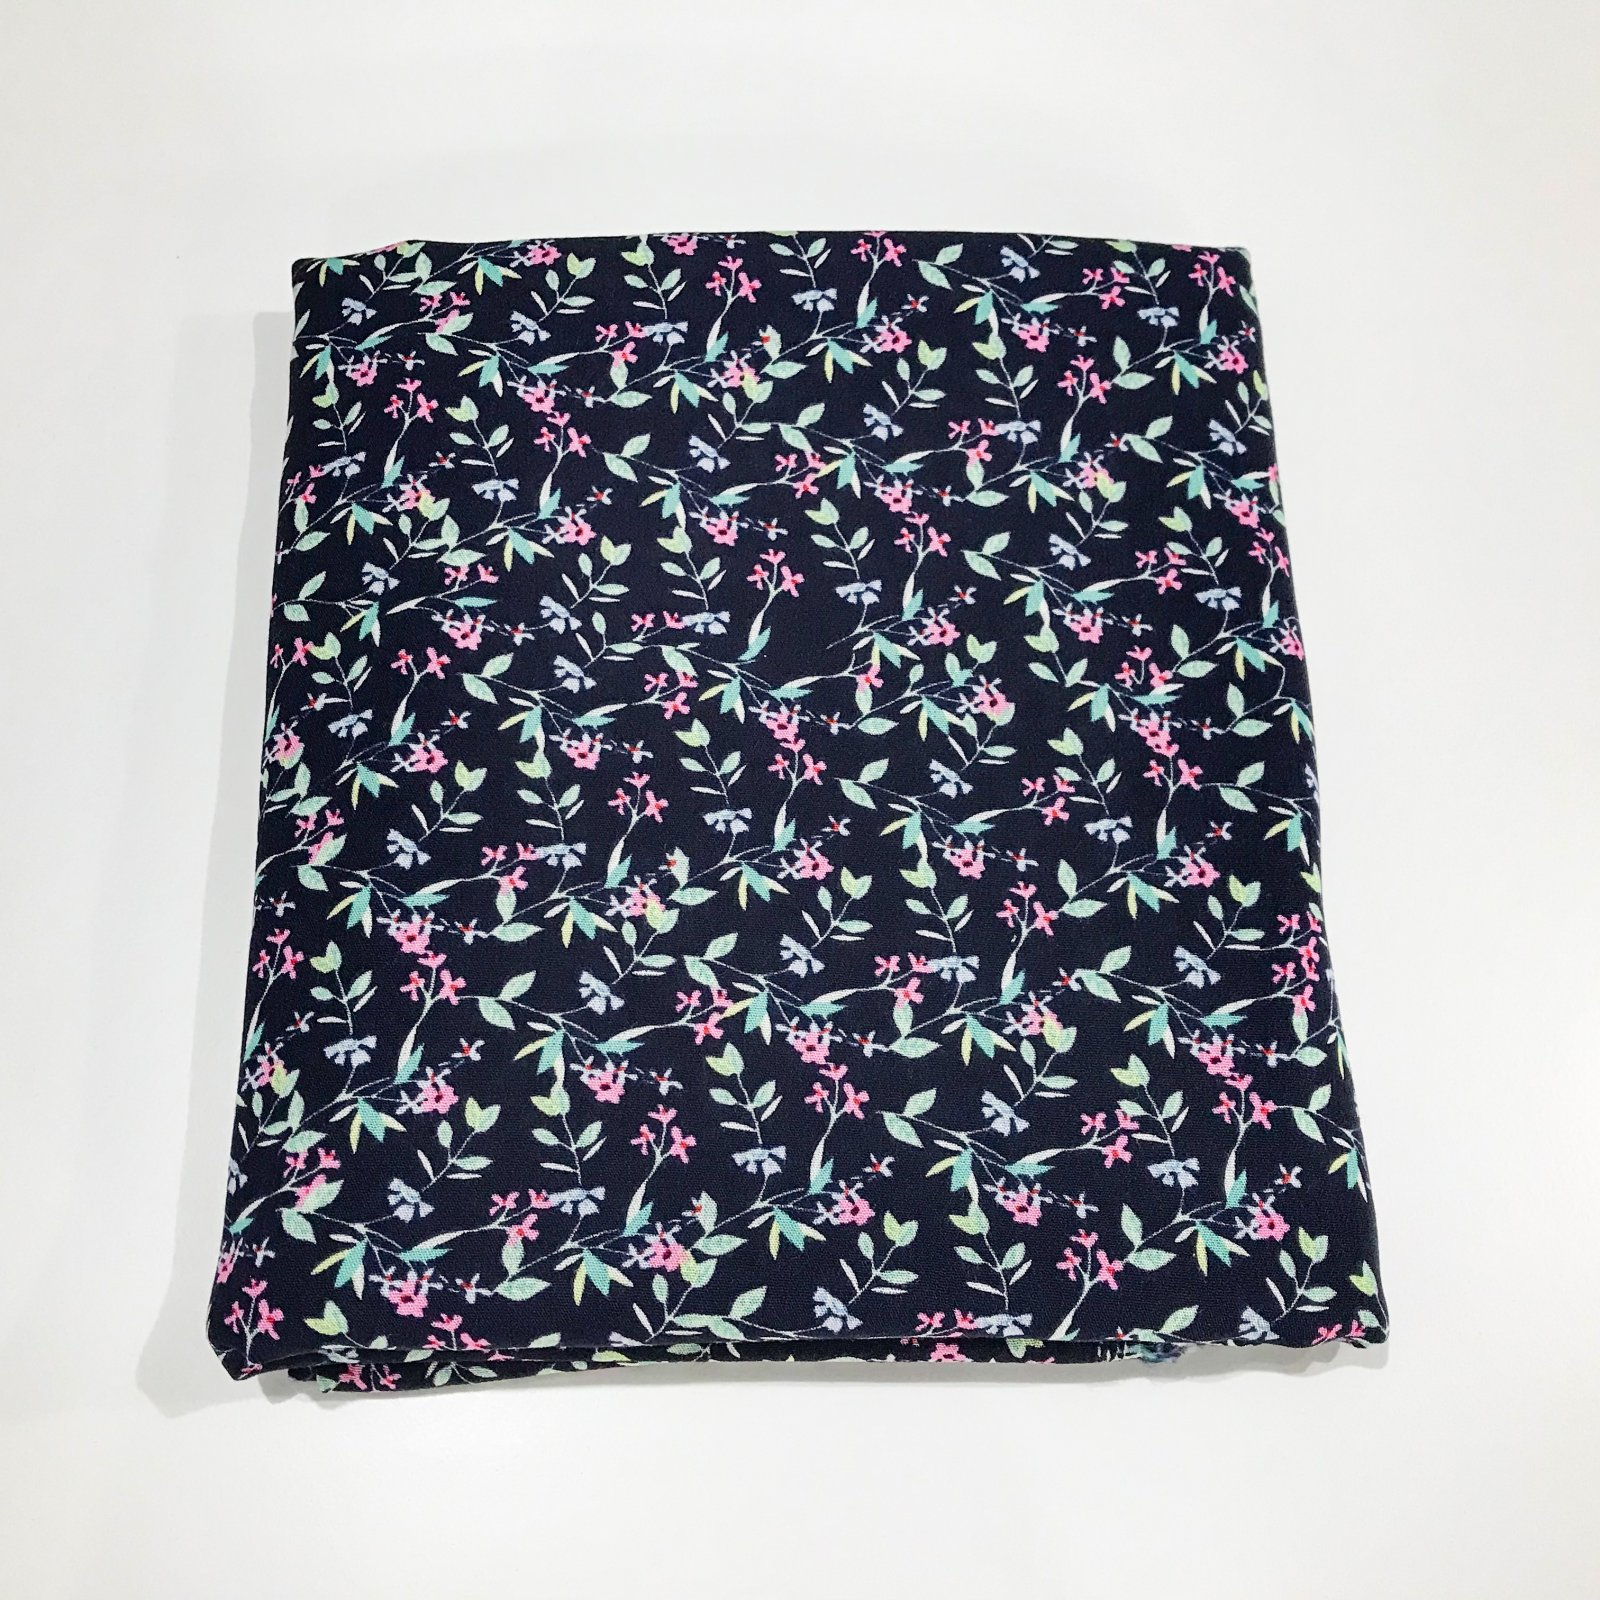 2 1/4 yard - Rayon Crepe - Small Blue Bachelor Buttons and Pink Flowers on Navy